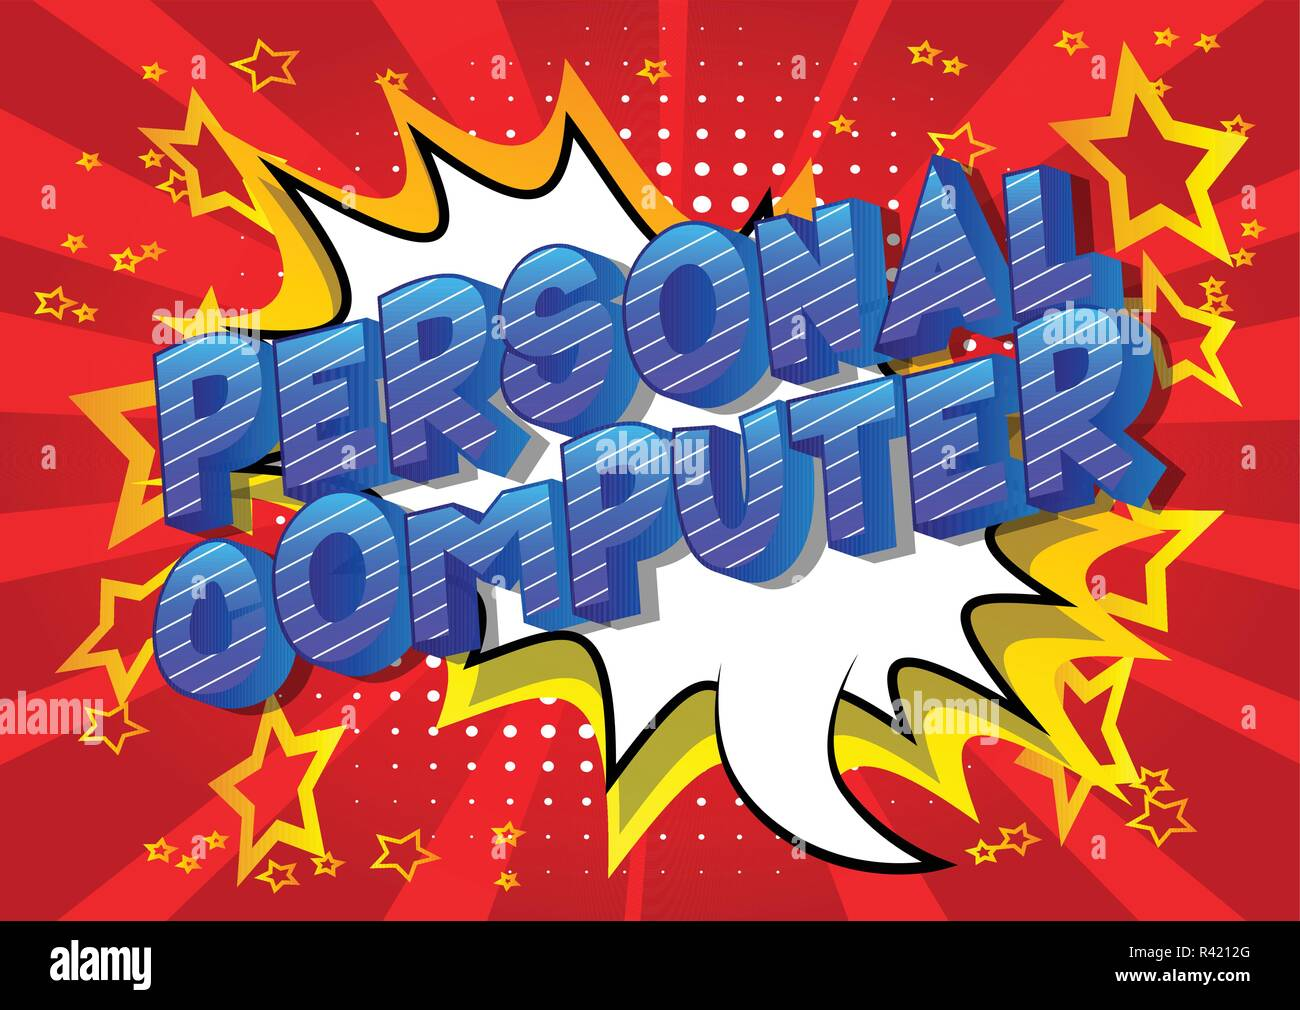 Personal Computer - Vector illustrated comic book style phrase on abstract background. - Stock Image